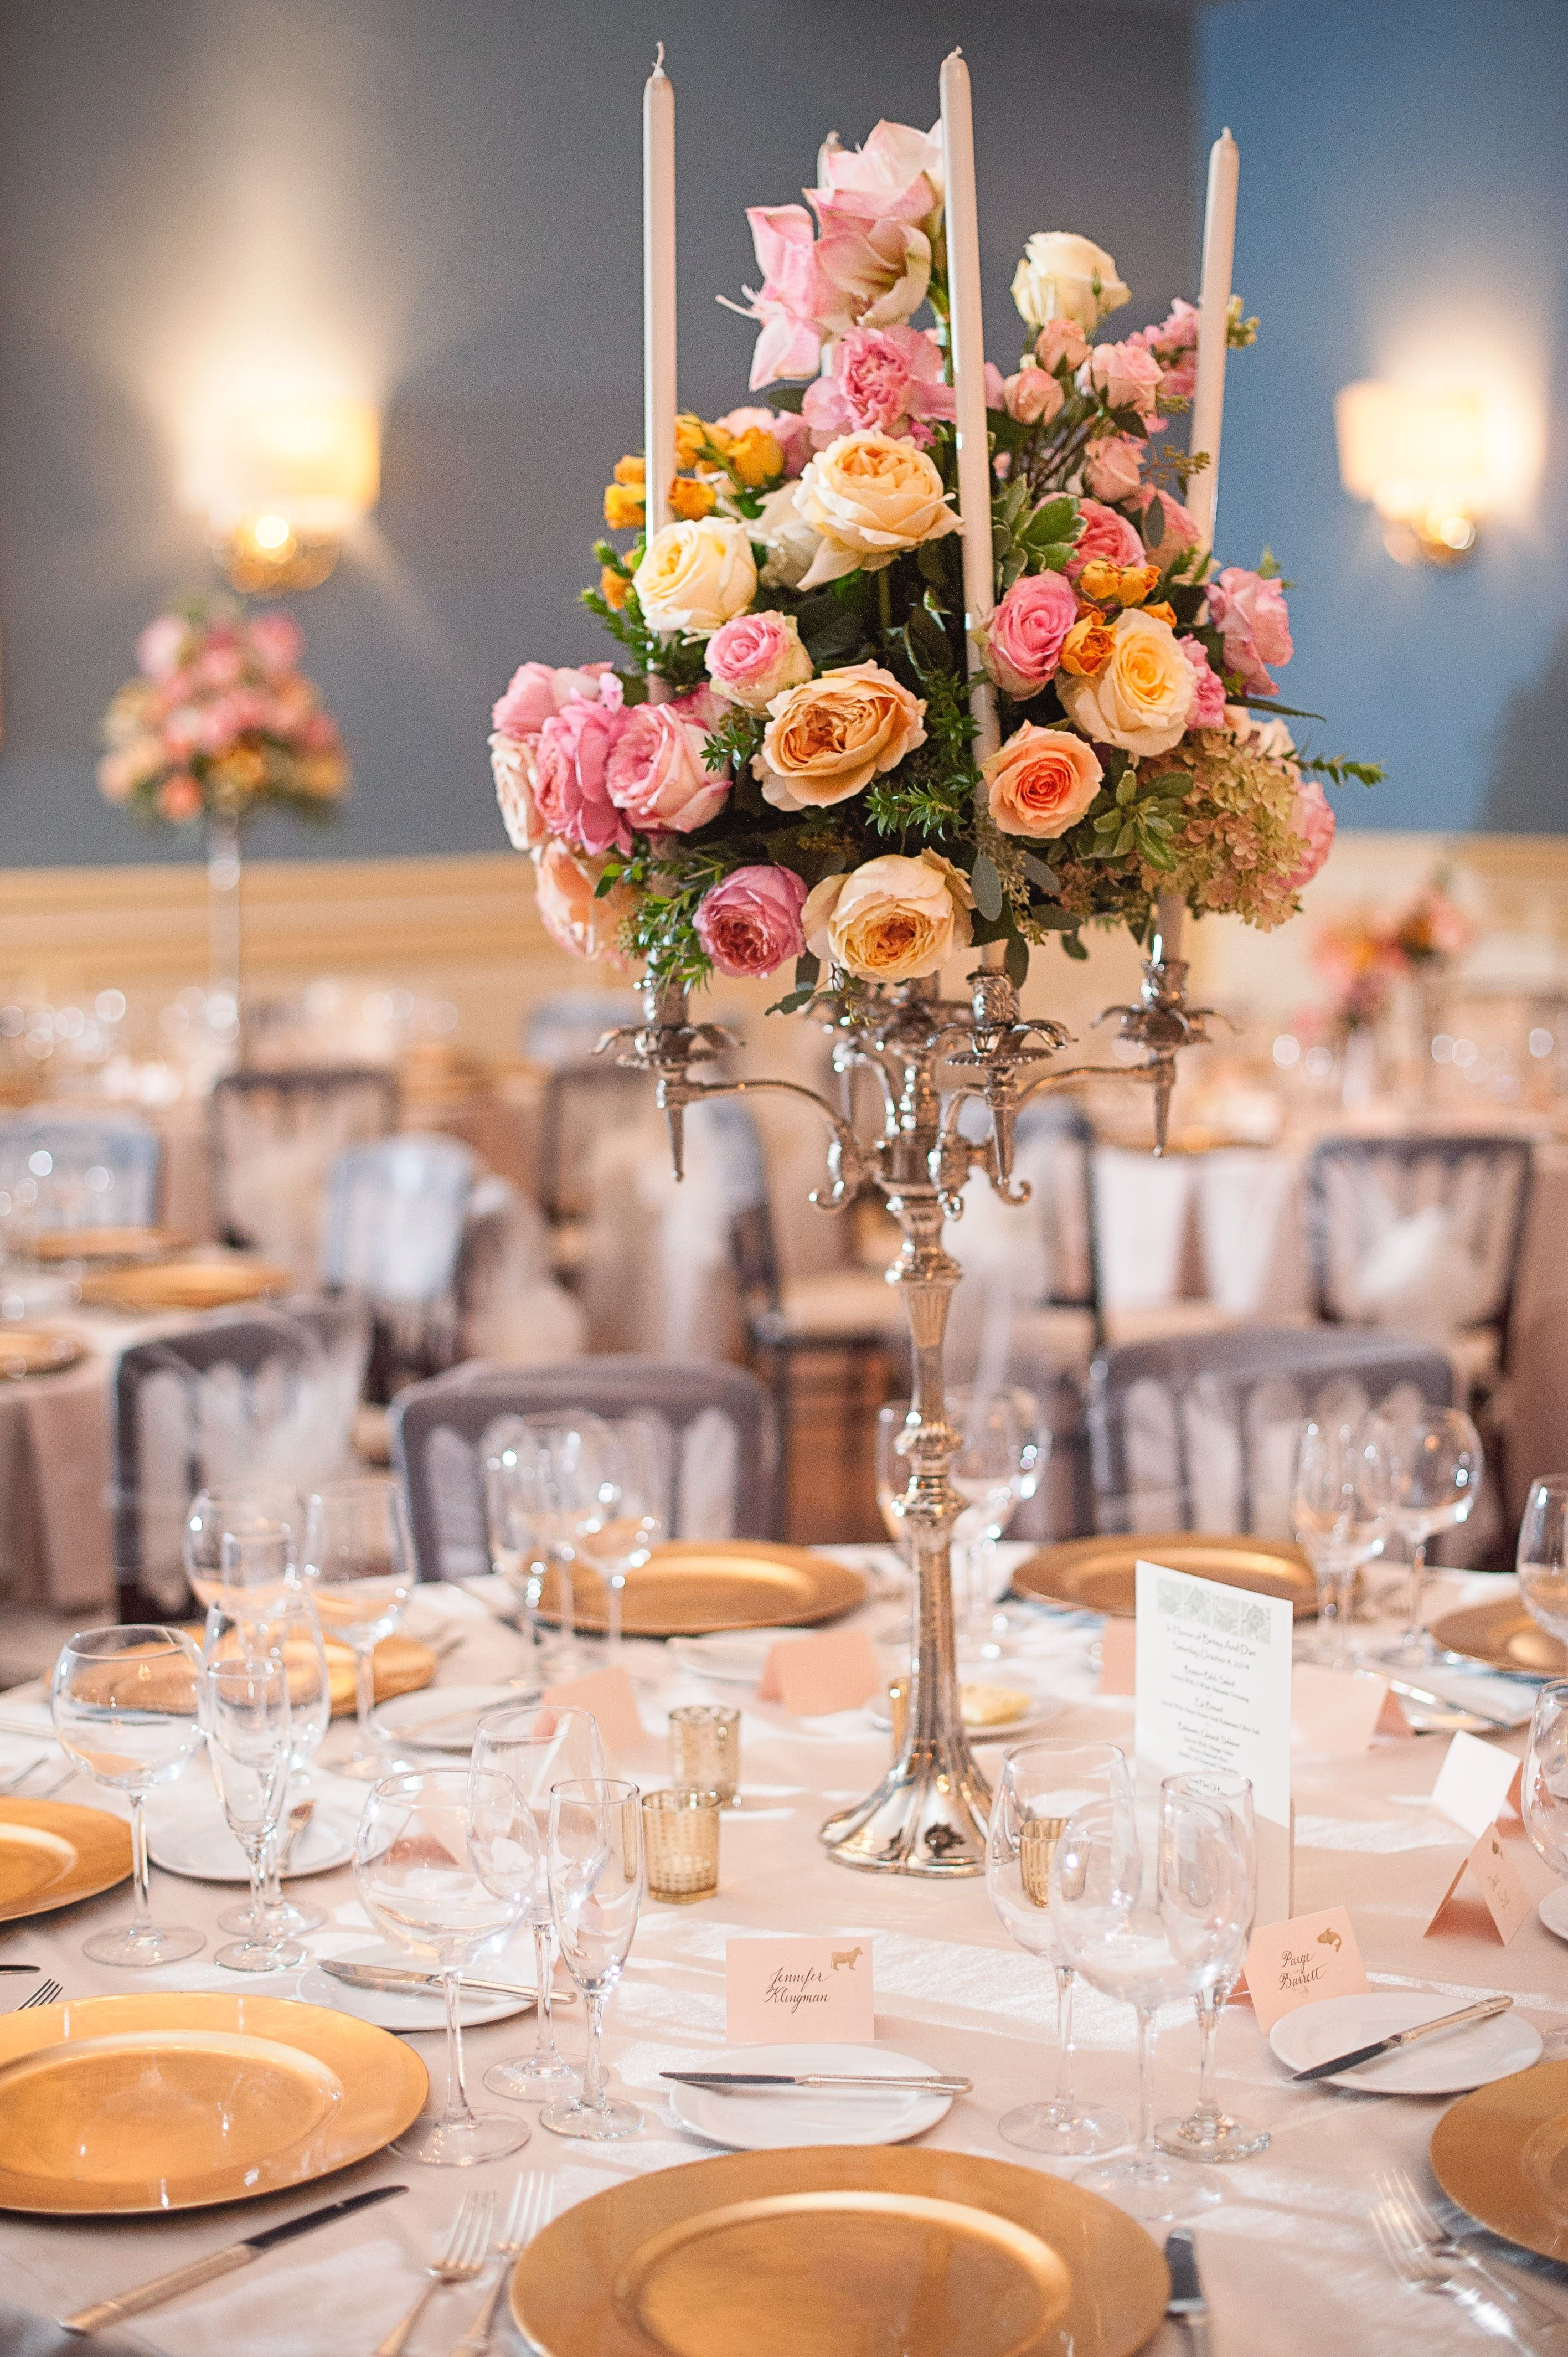 Candelabra Centerpieces With Pink Peach And Yellow Flowers